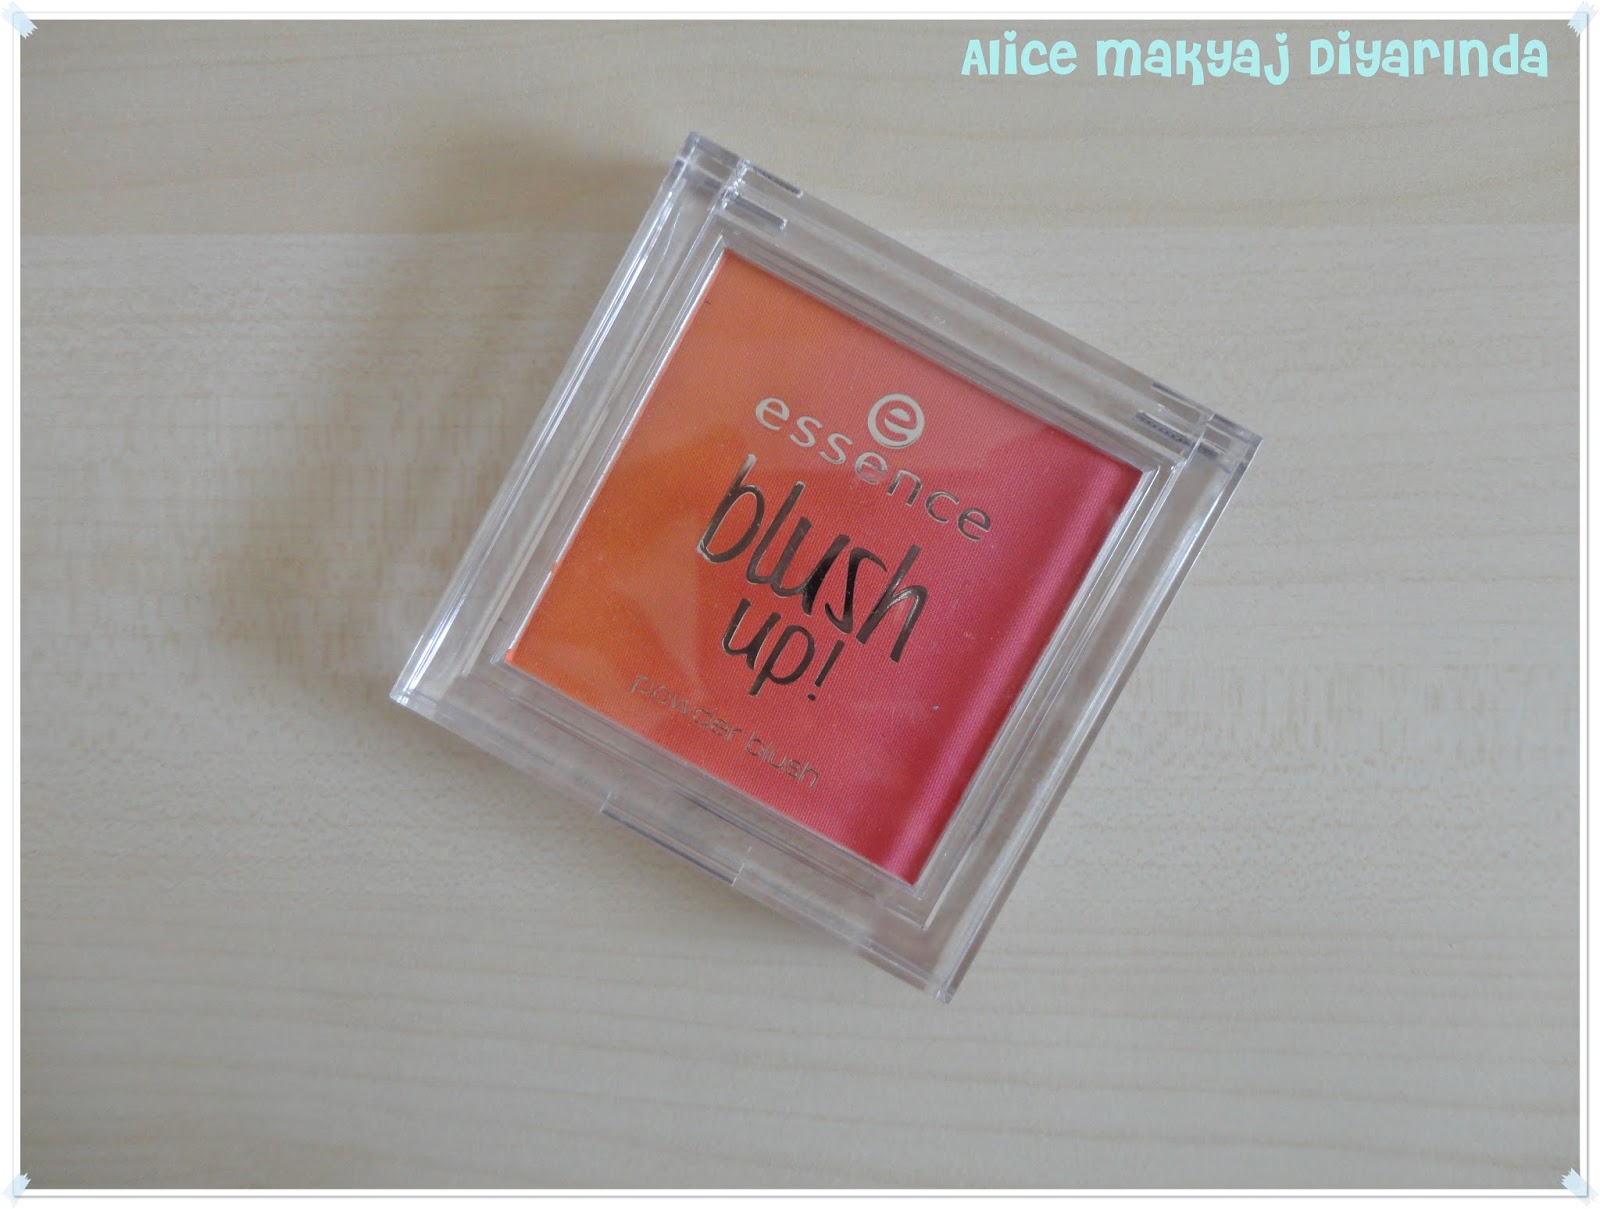 Essence Blush Up Allık